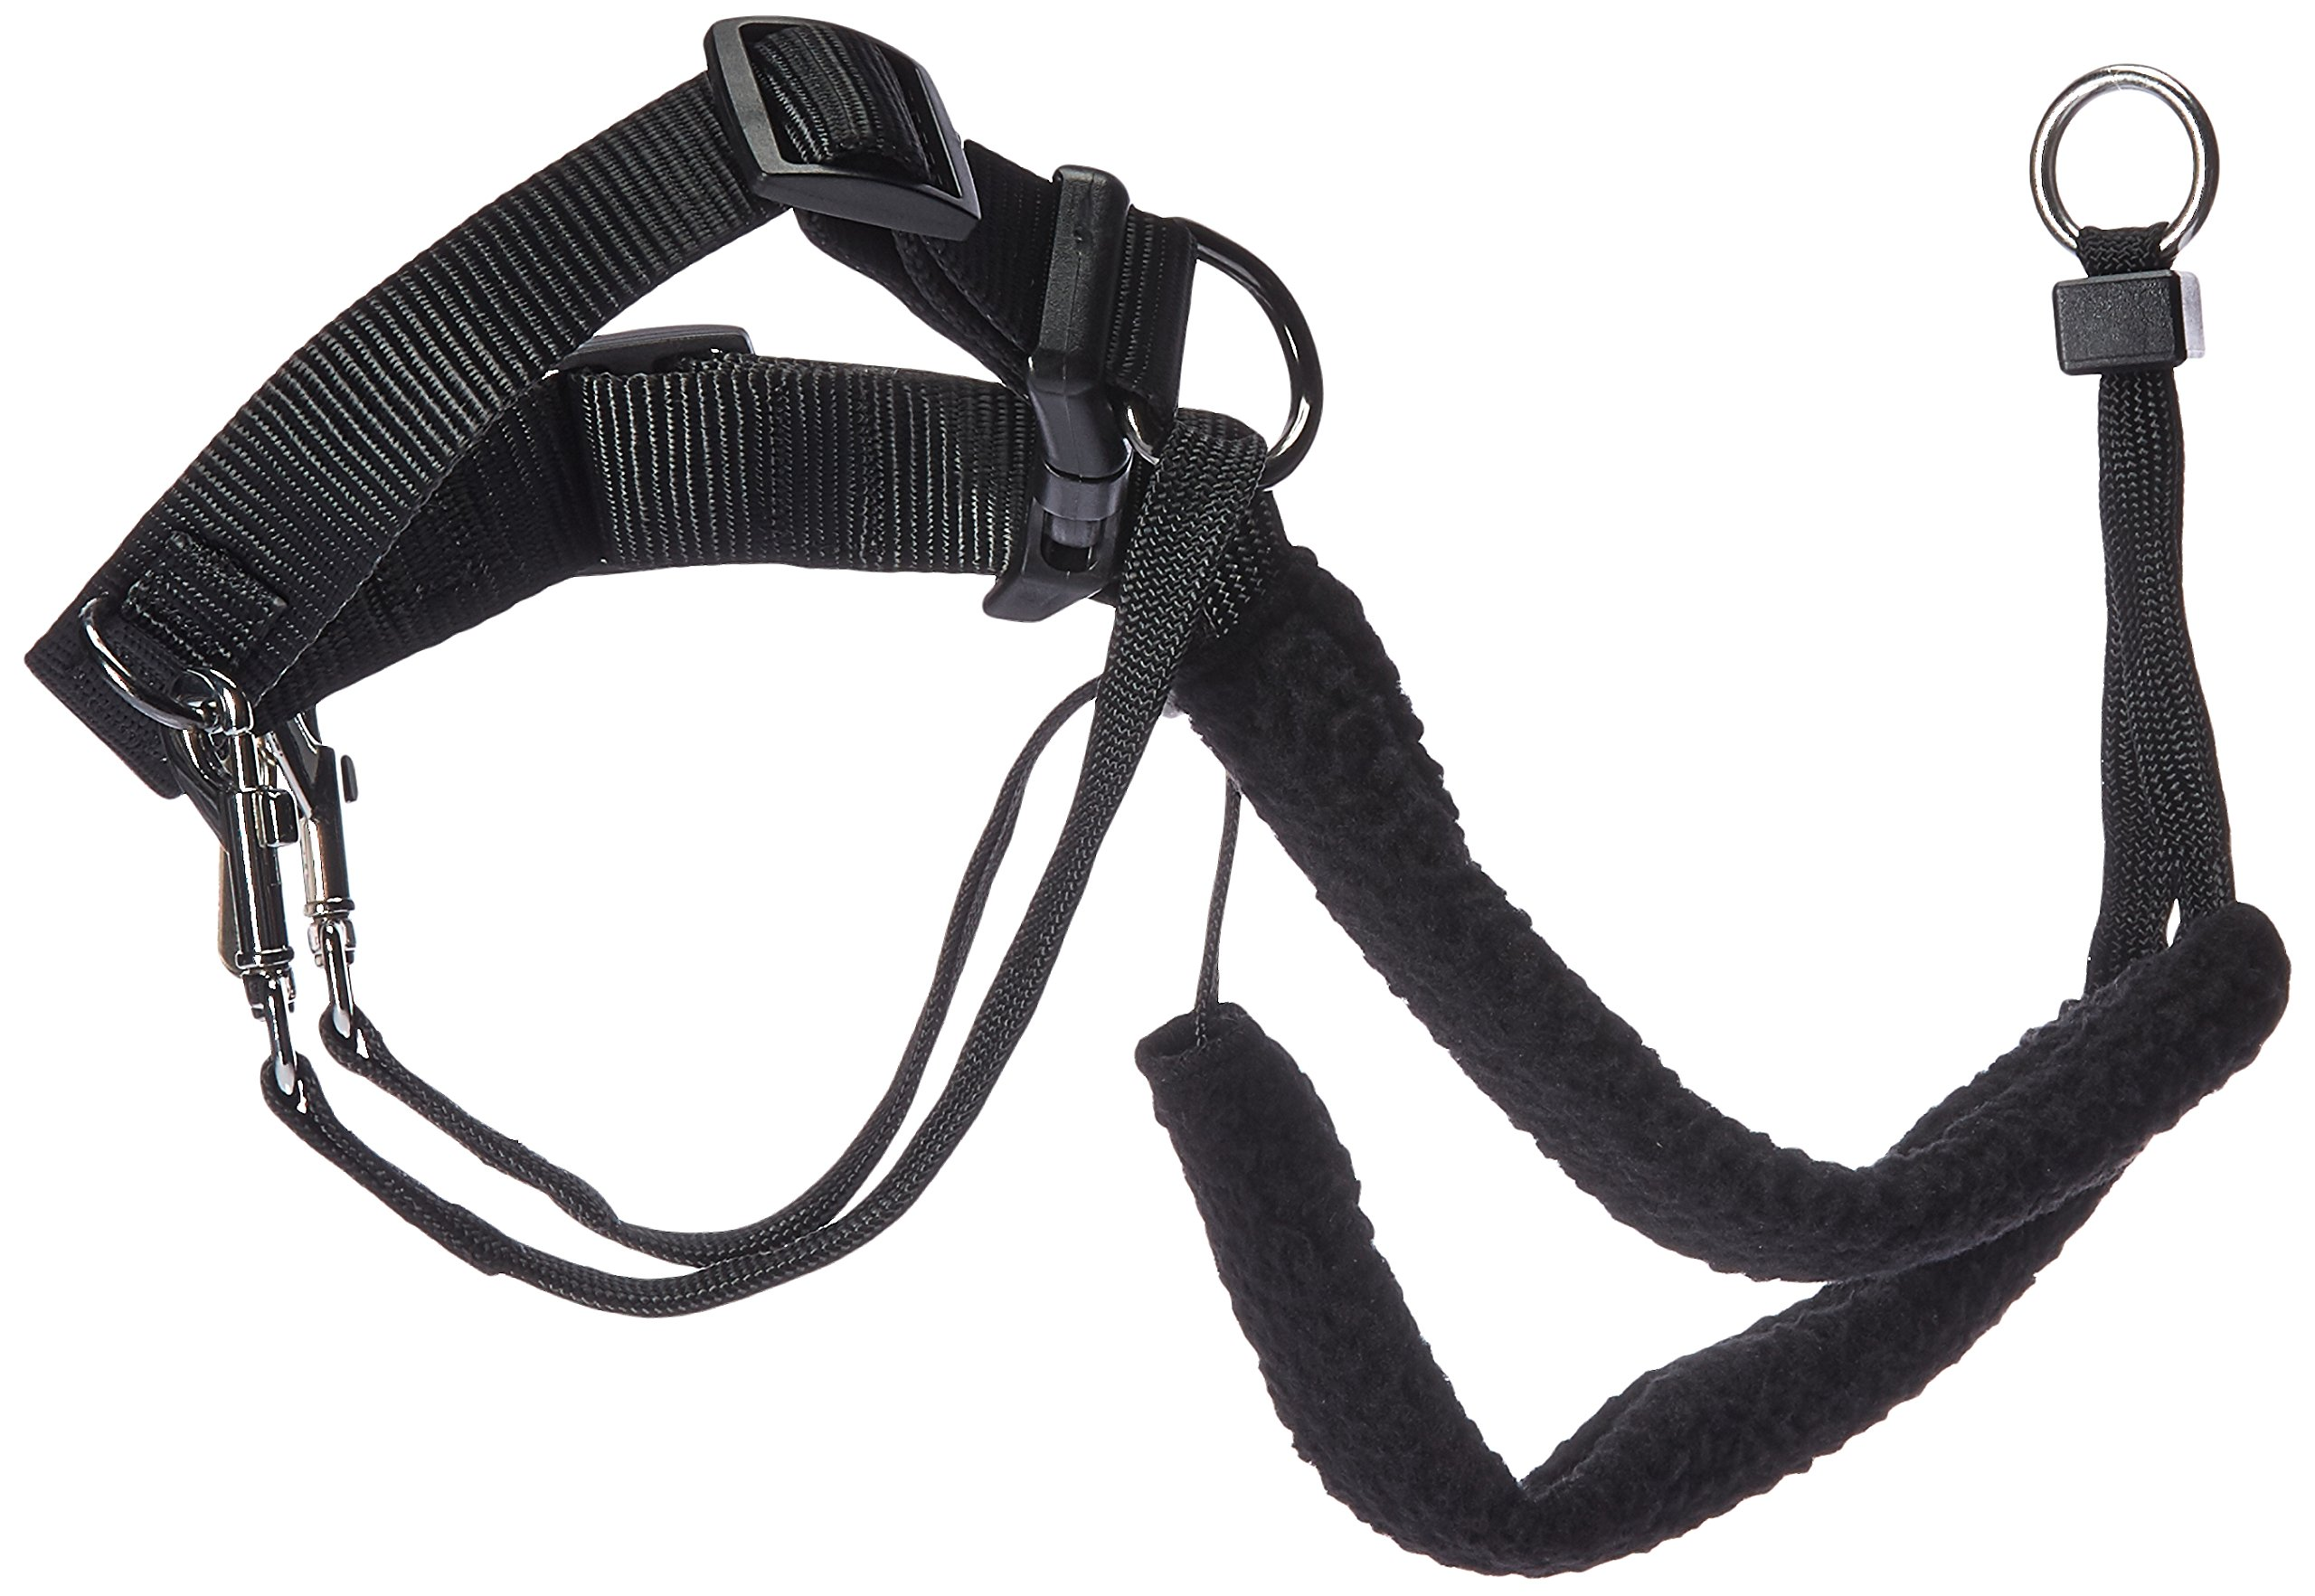 Sporn Dog Halter - Non-Pull No-Choke Humane Pet Training Halter Harness, Easy Step-in Vest Collar Halter for Control, Detachable Restraints & Sherpa Sleeves, Patented Dog Pull Control Technology by